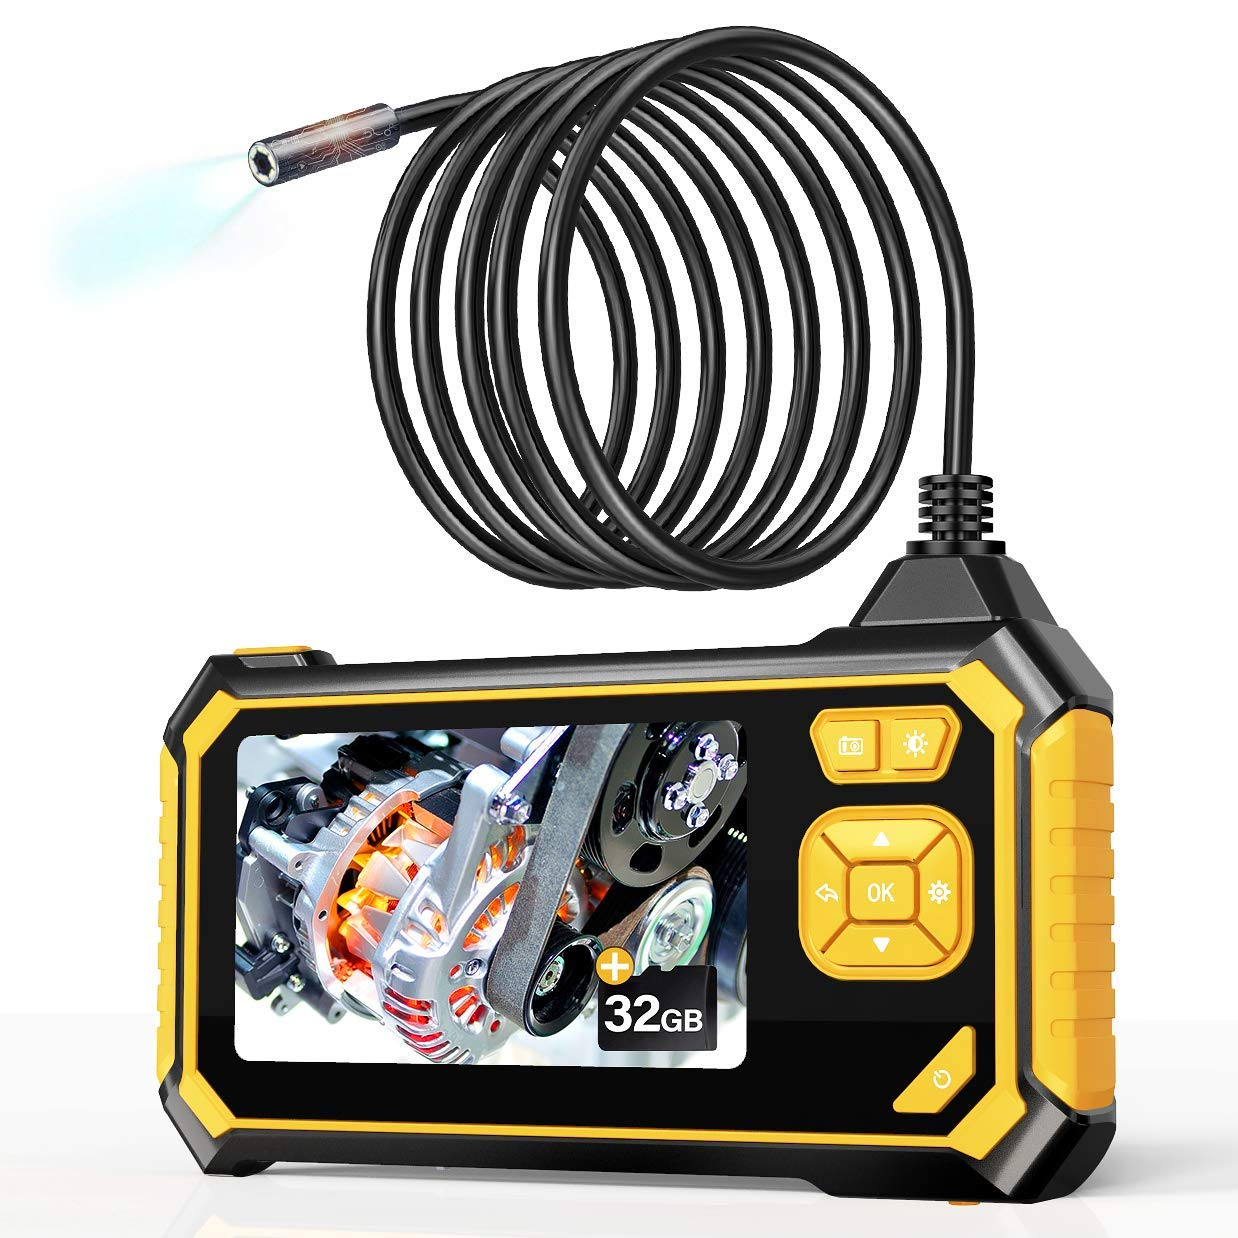 1M Industrial Endoscope 8mm 8 LED 1200P WiFi IP68 Waterproof Borescope for Smartphones PC Tablets SUNWAN Inspection Camera